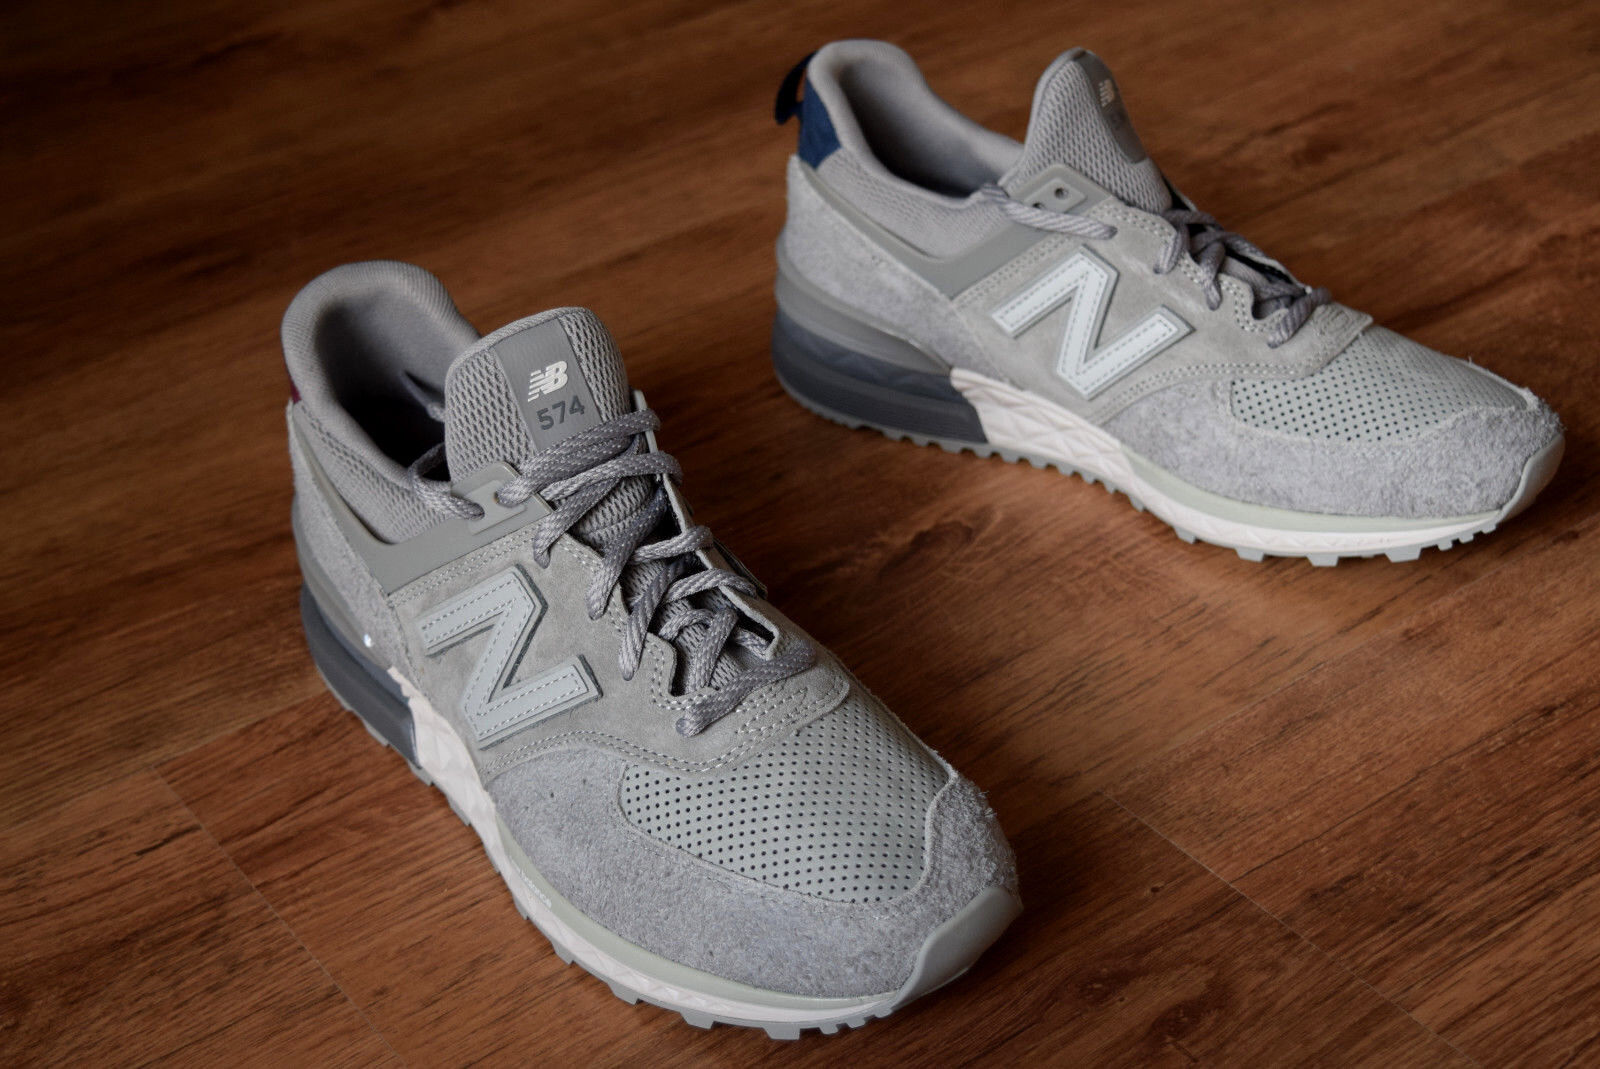 New Balance MS 574 OF 40 40,5 41,5 42 42,5 43 44 44,5 45 45,5 47 peak to streets